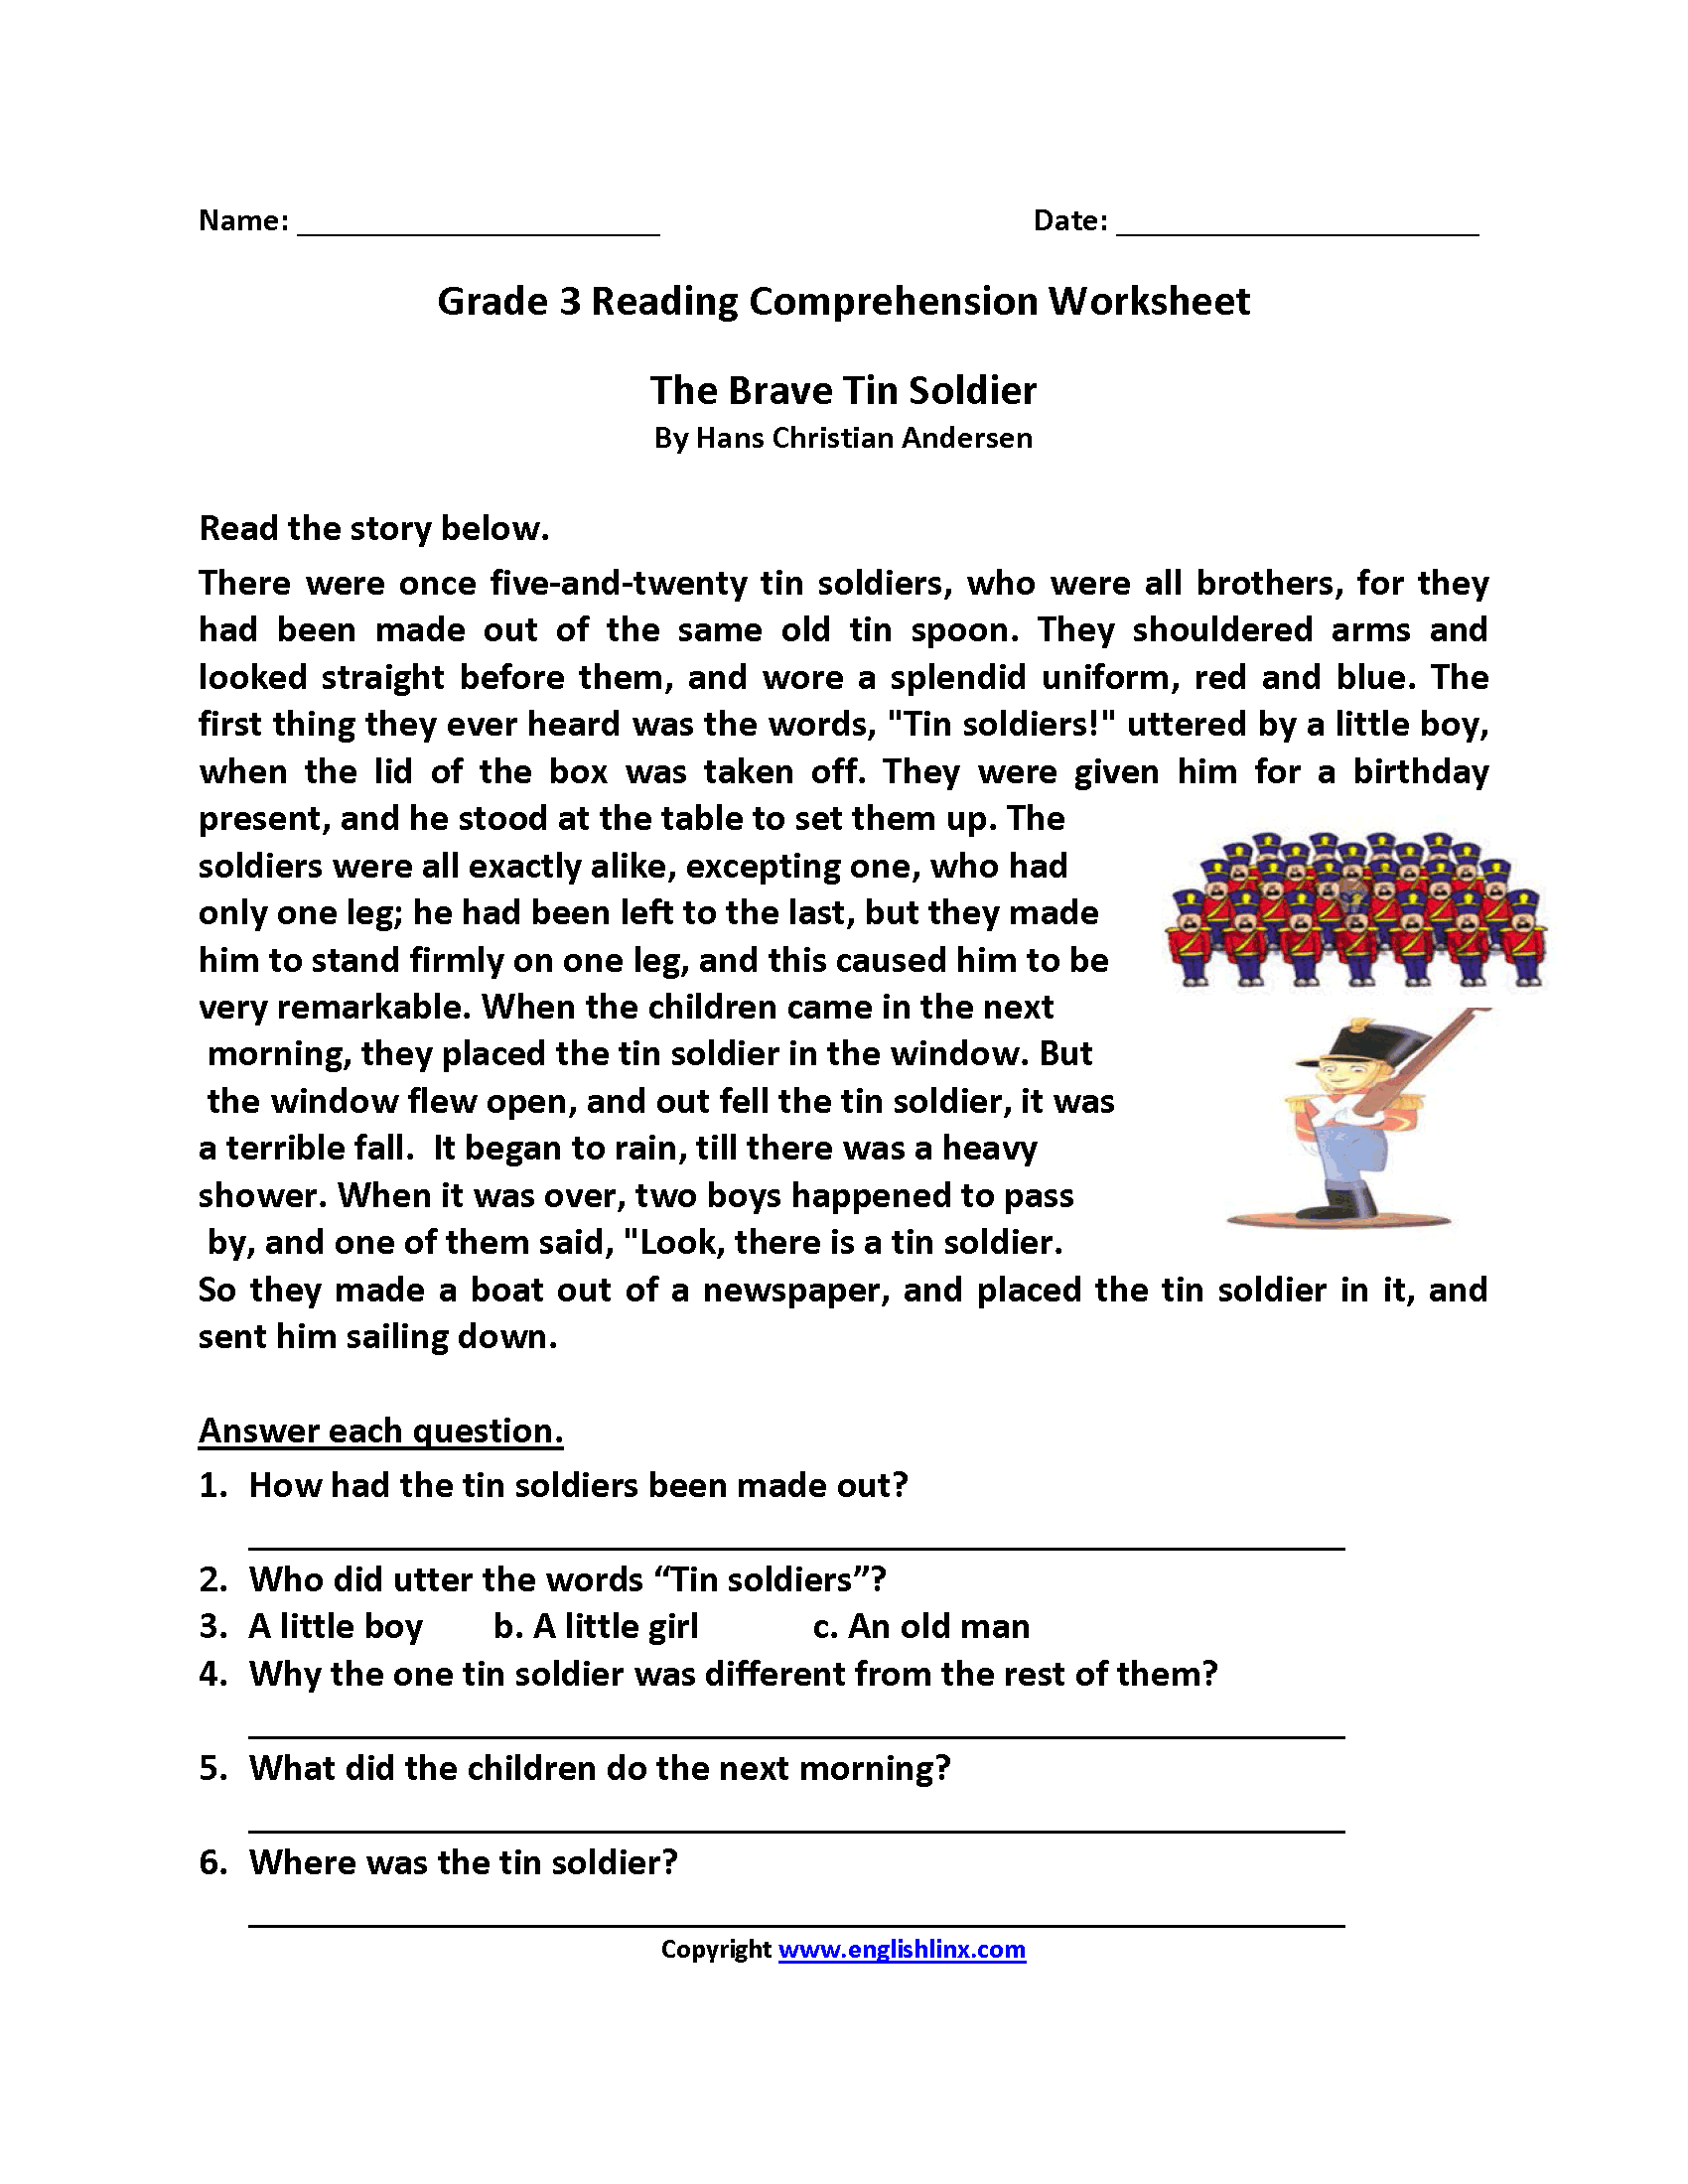 Free Printable Reading Comprehension Worksheets 3Rd Grade For Free - Third Grade Reading Worksheets Free Printable